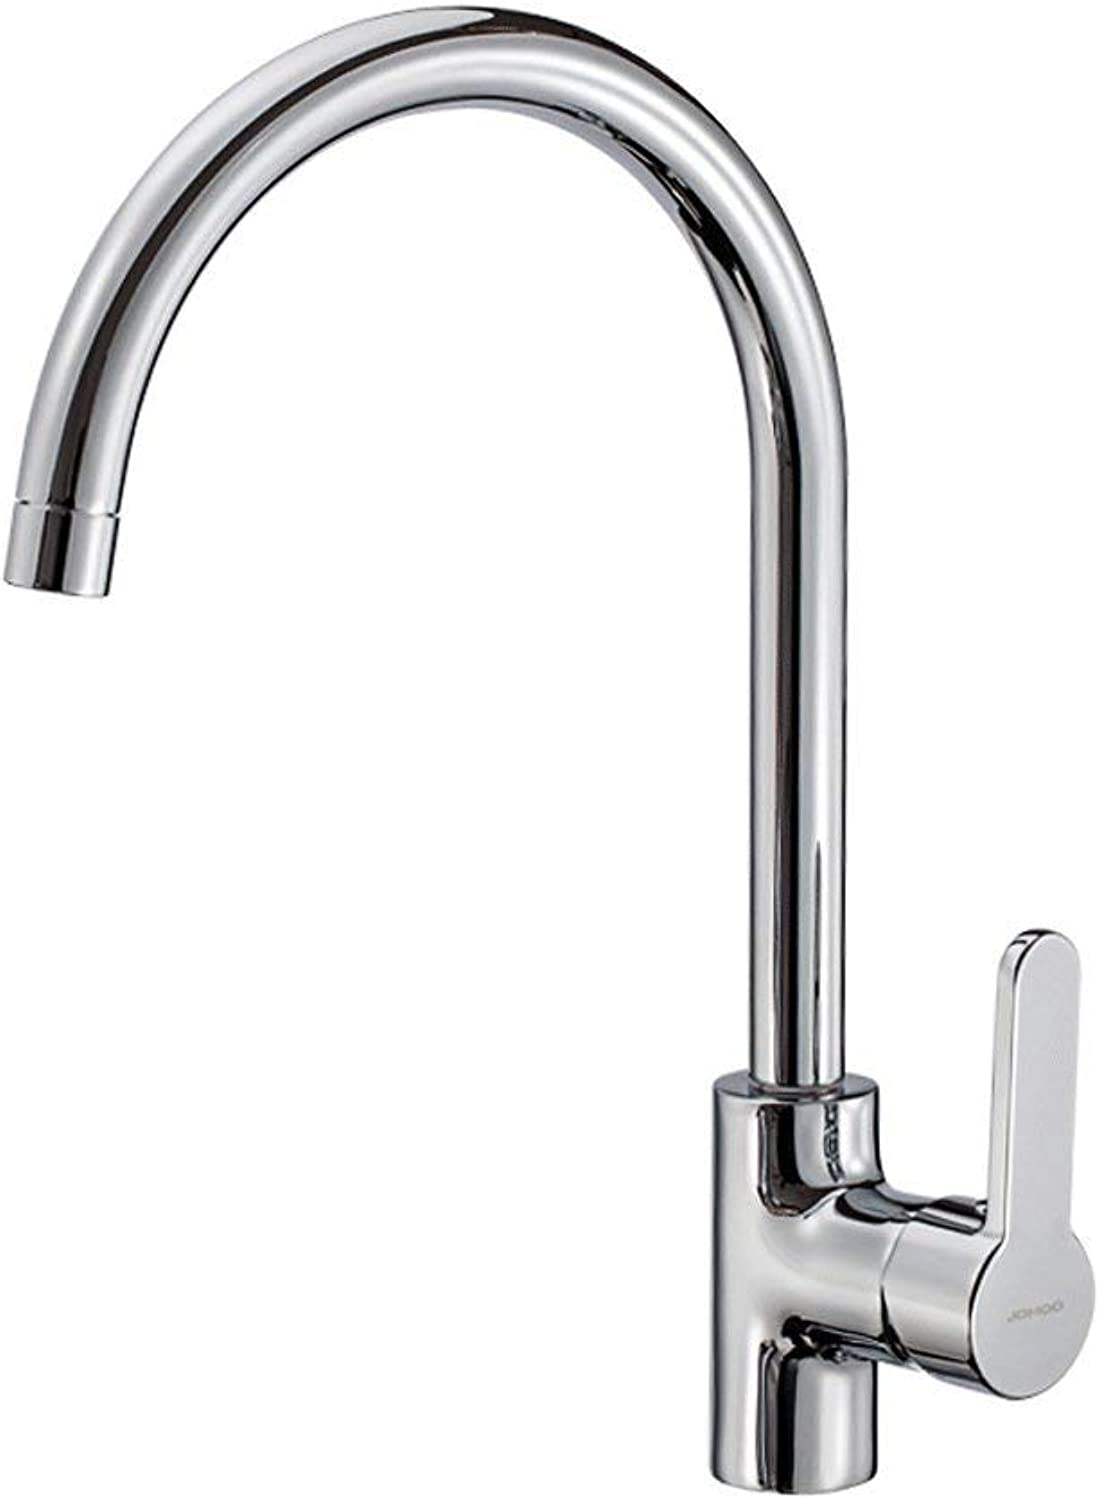 DYR Faucet Bathroom Faucet Brass Brass Material Chrome on the surface Faucet with cold and cold water Single lever faucet with high bend 3336